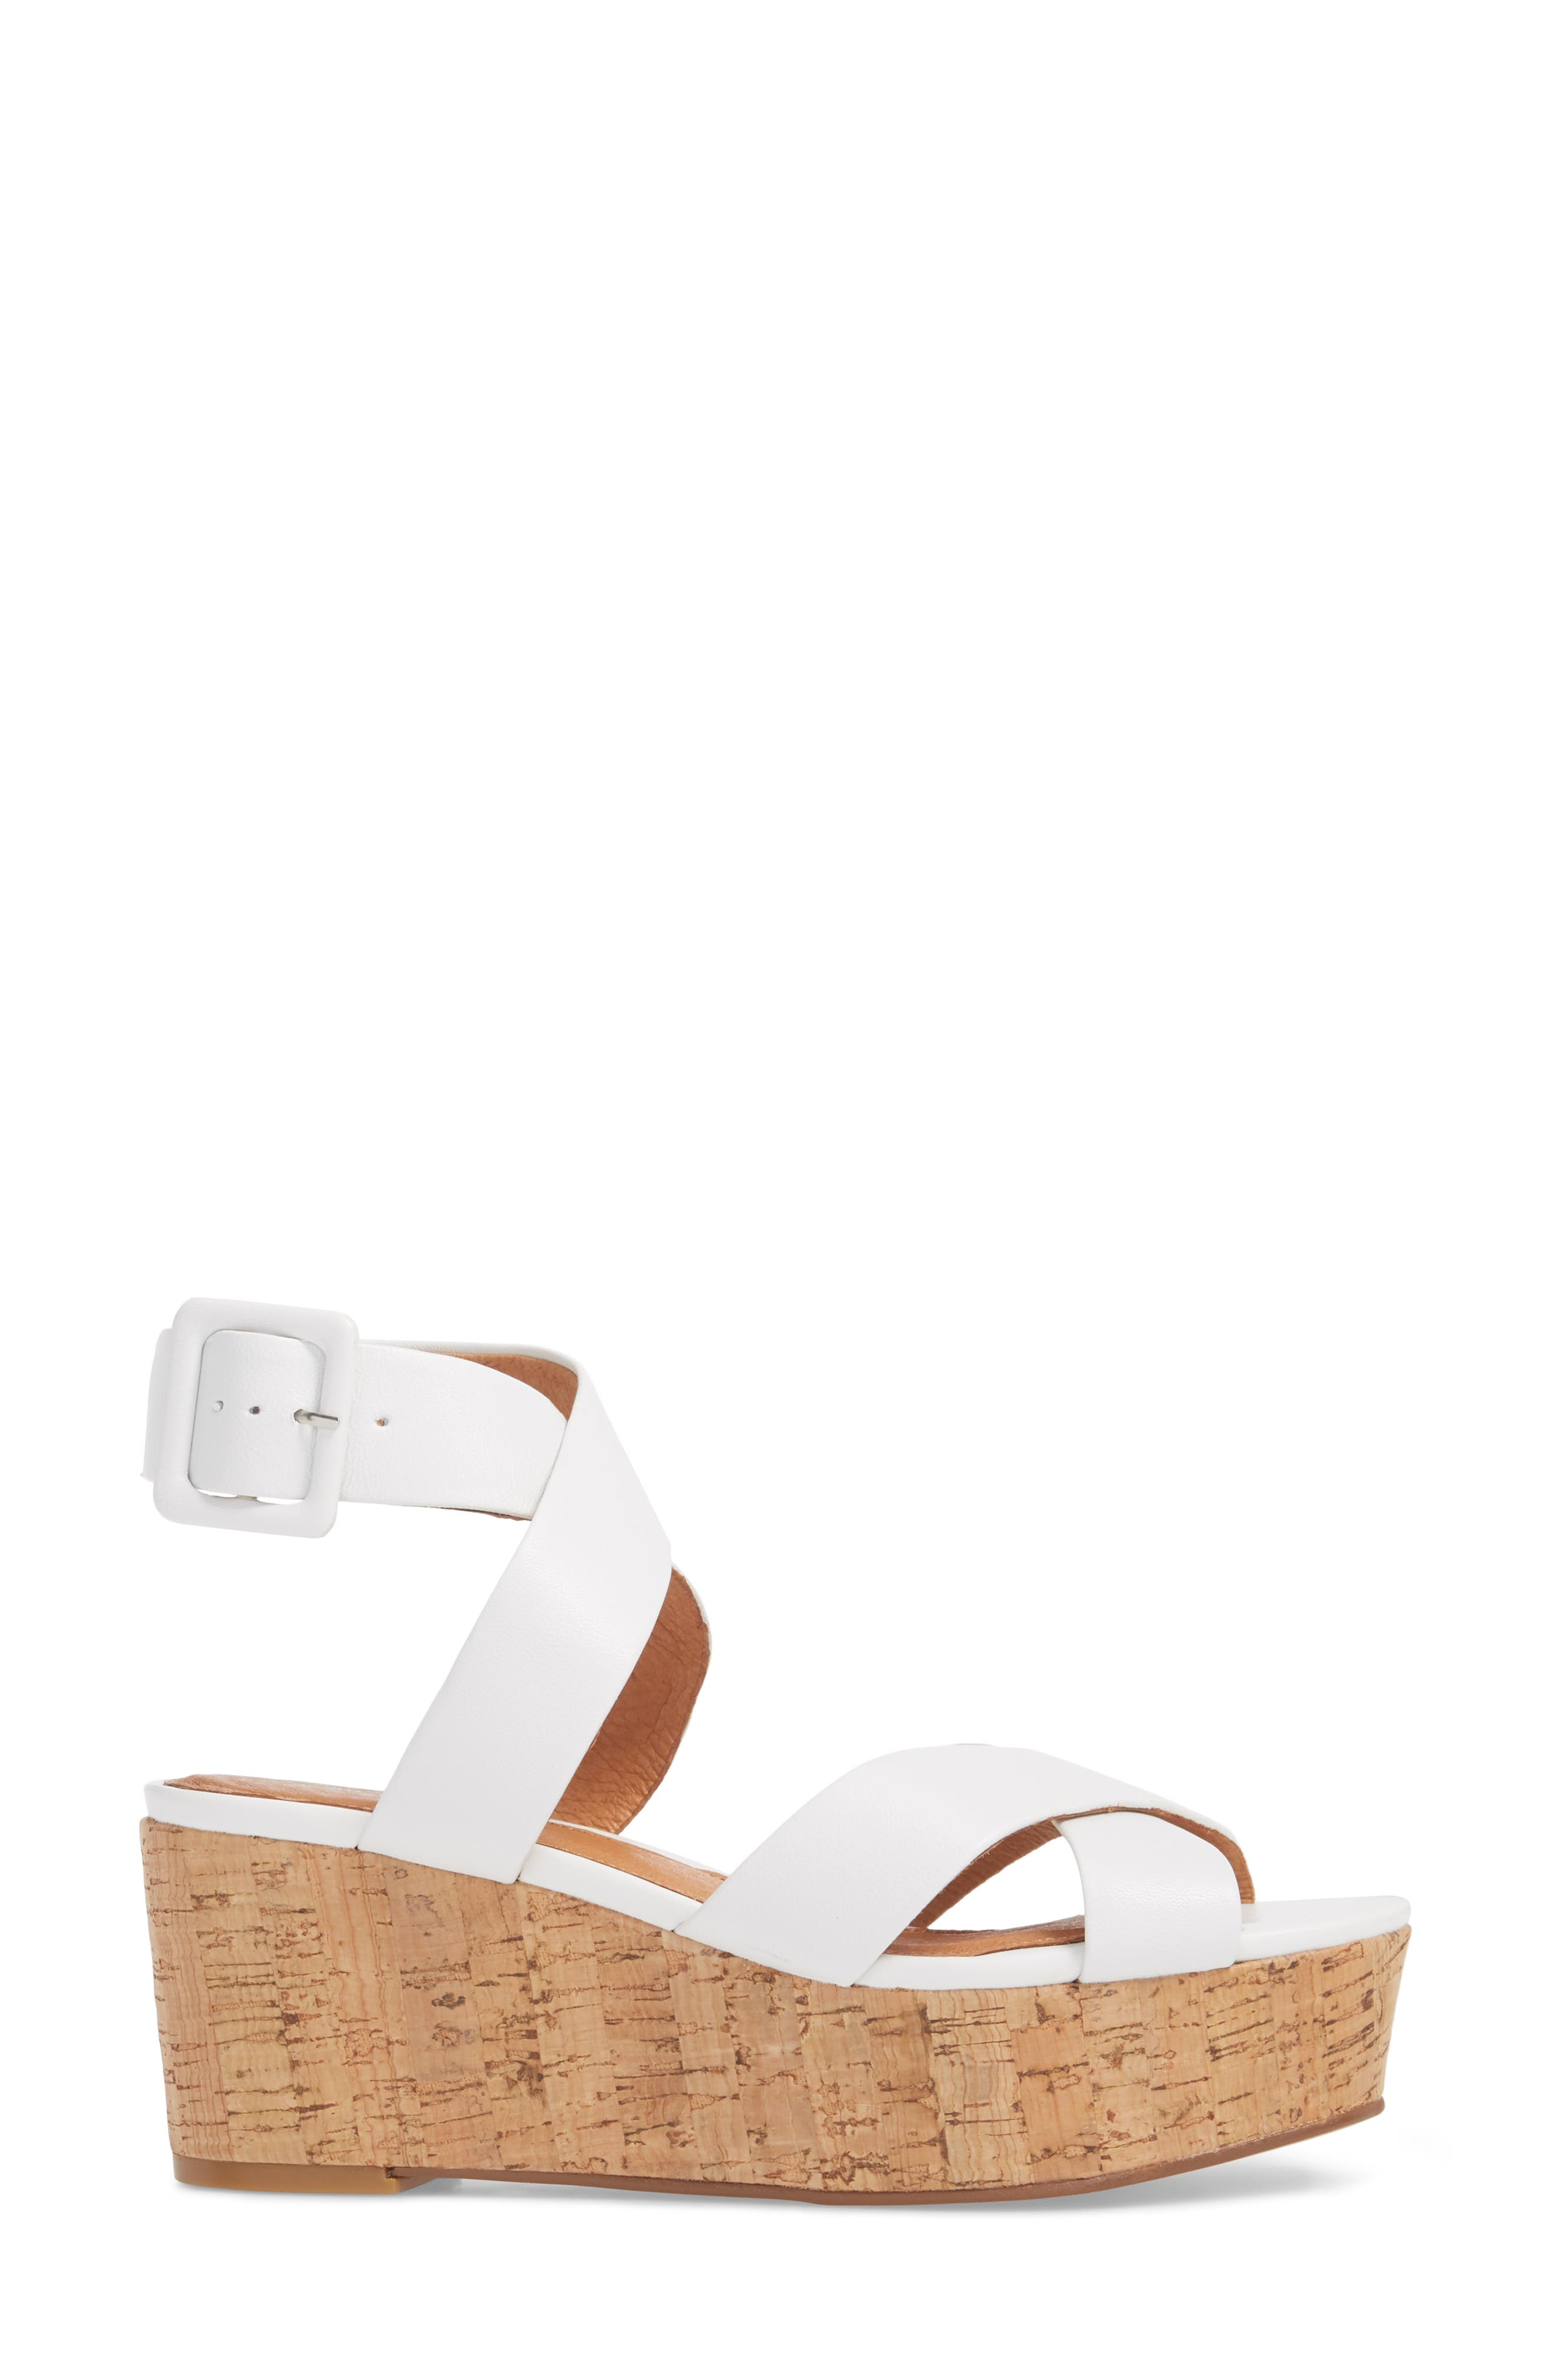 Evie Platform Wedge Sandal,                             Alternate thumbnail 3, color,                             White Leather